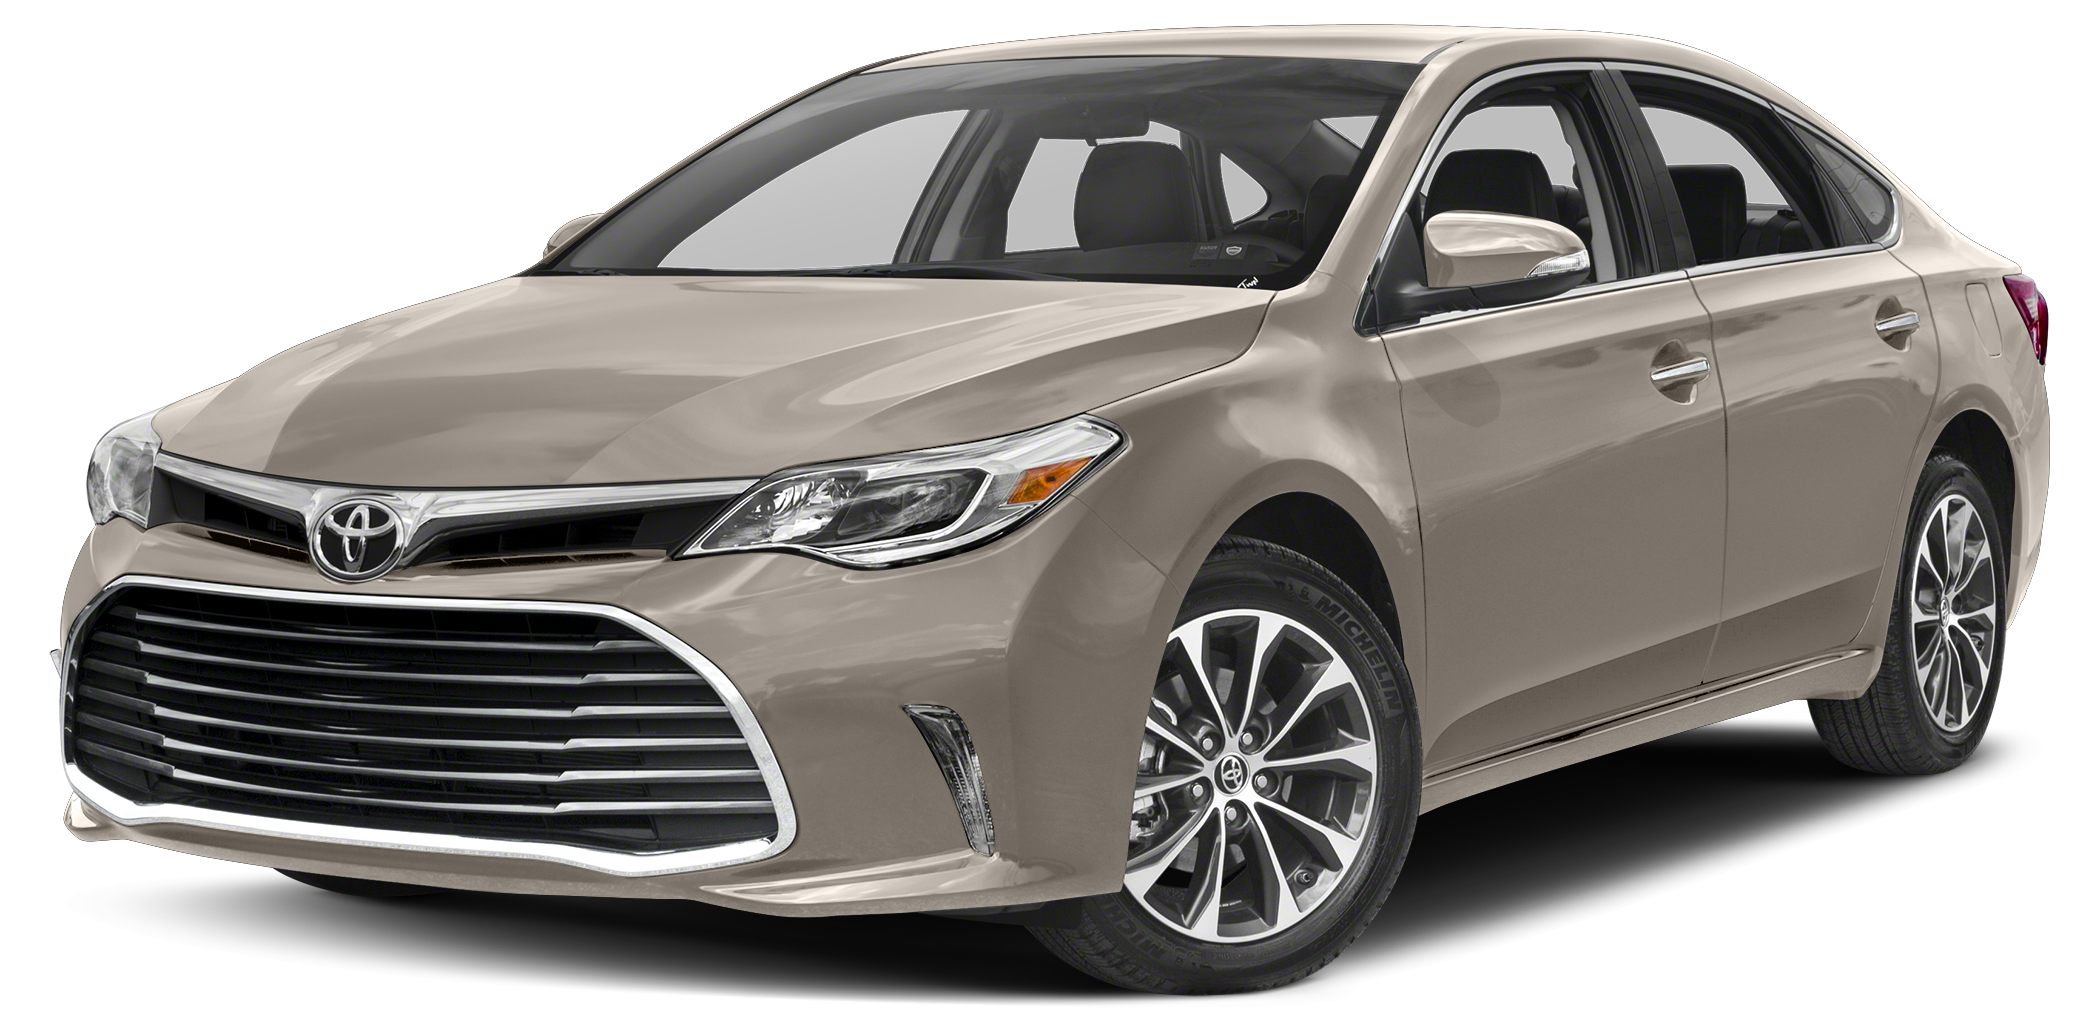 2018 Toyota Avalon XLE Plus Miles 0Color Cream Stock 6276227 VIN 4T1BK1EB1JU276227